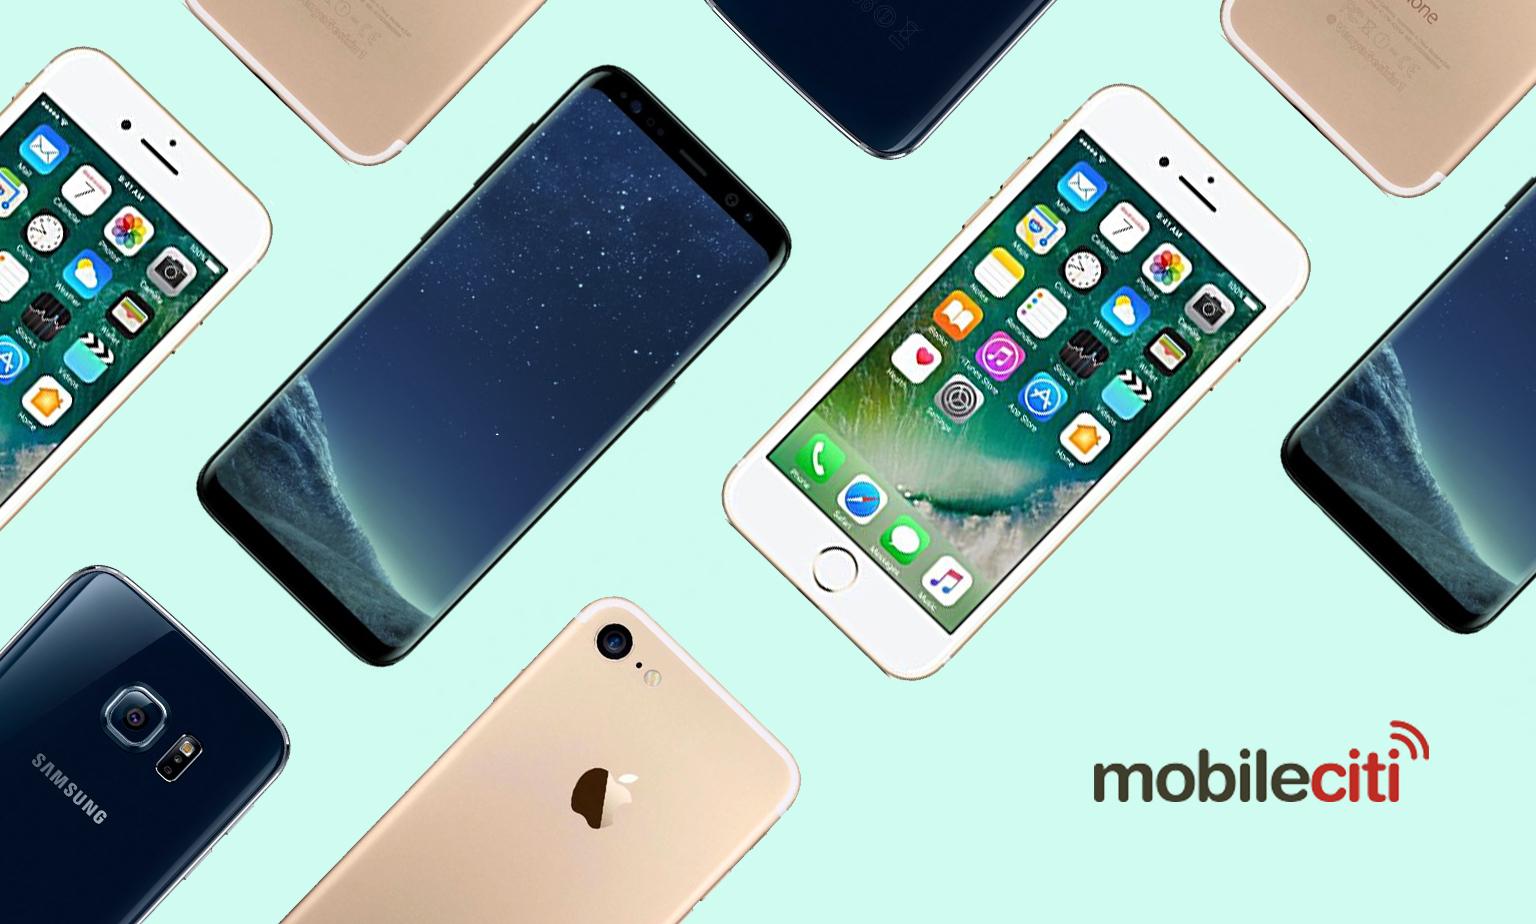 Up to 40% off at Mobileciti